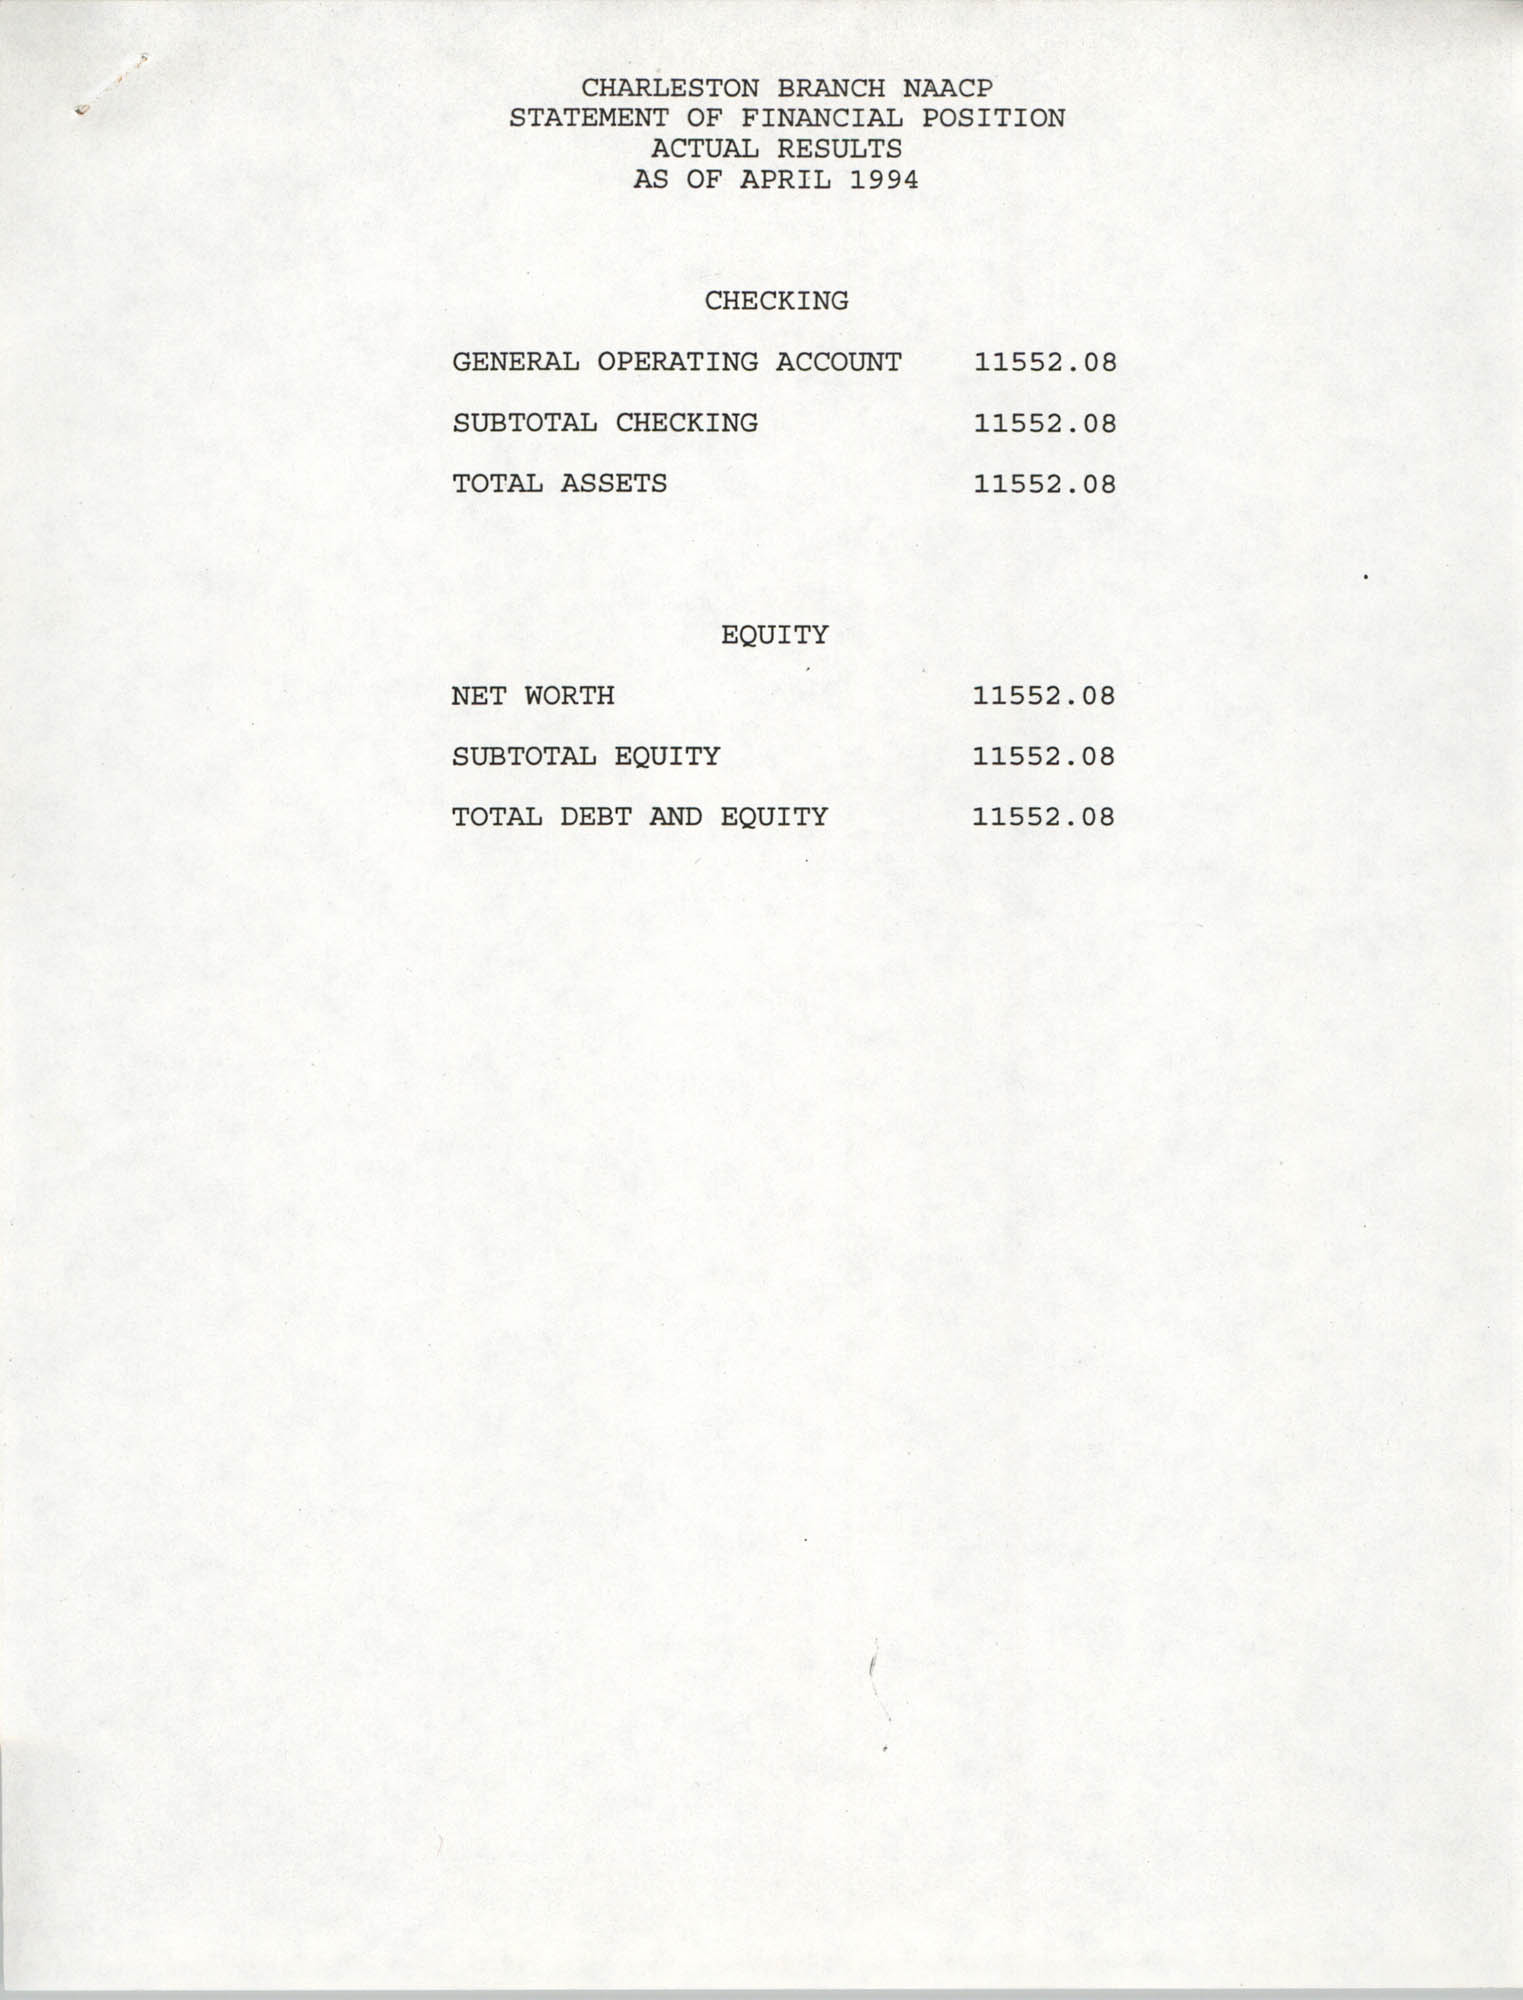 Charleston Branch of the NAACP Statement of Financial Position, April 1994